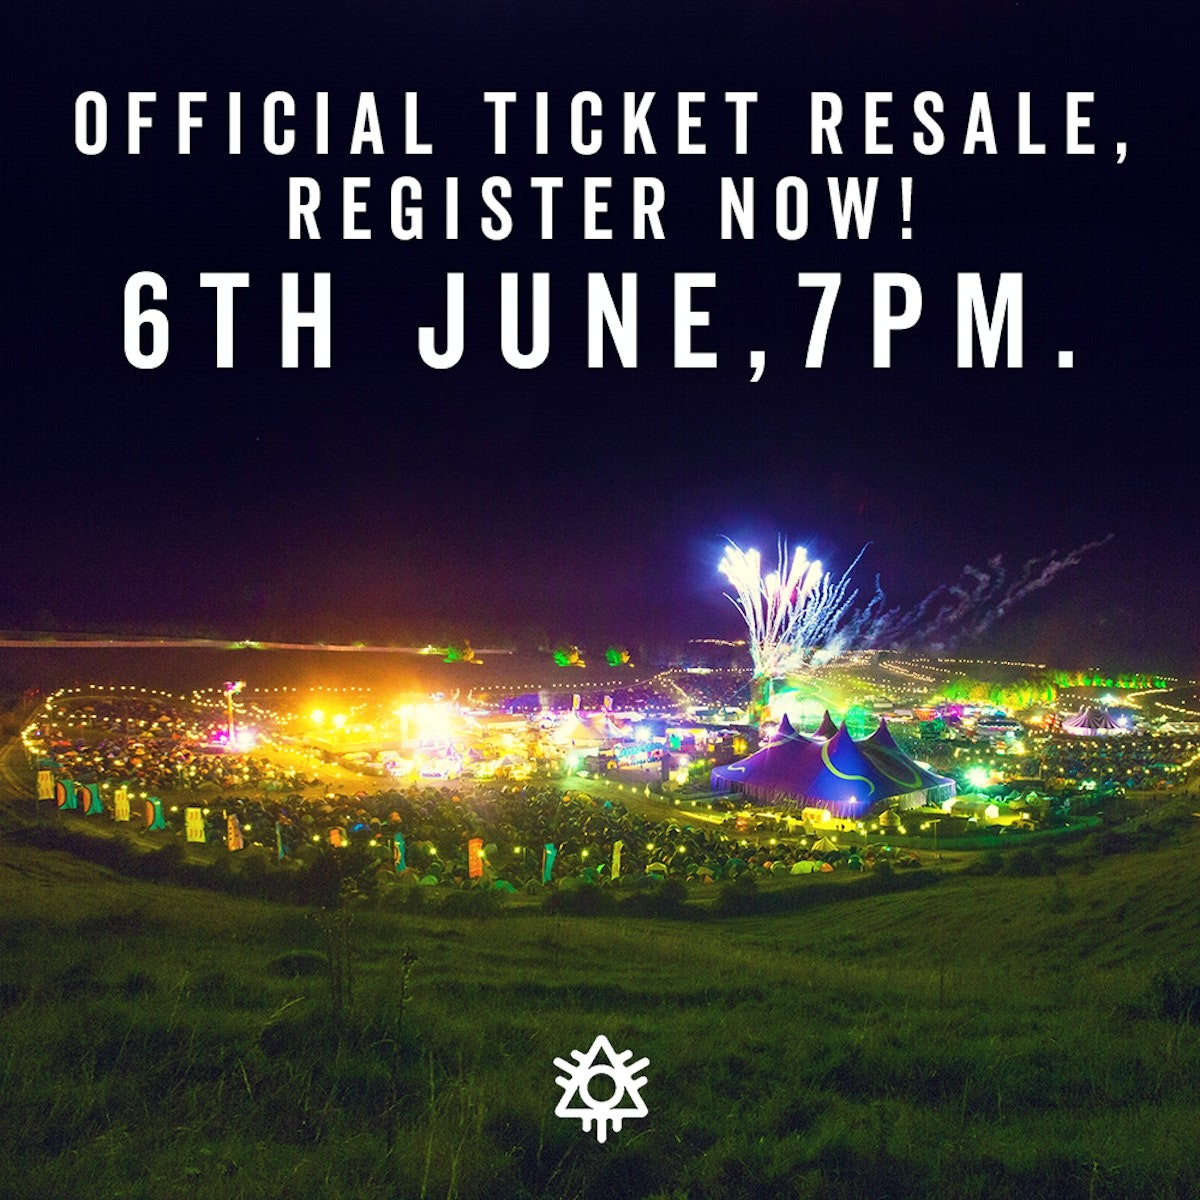 Official Ticket Resale...